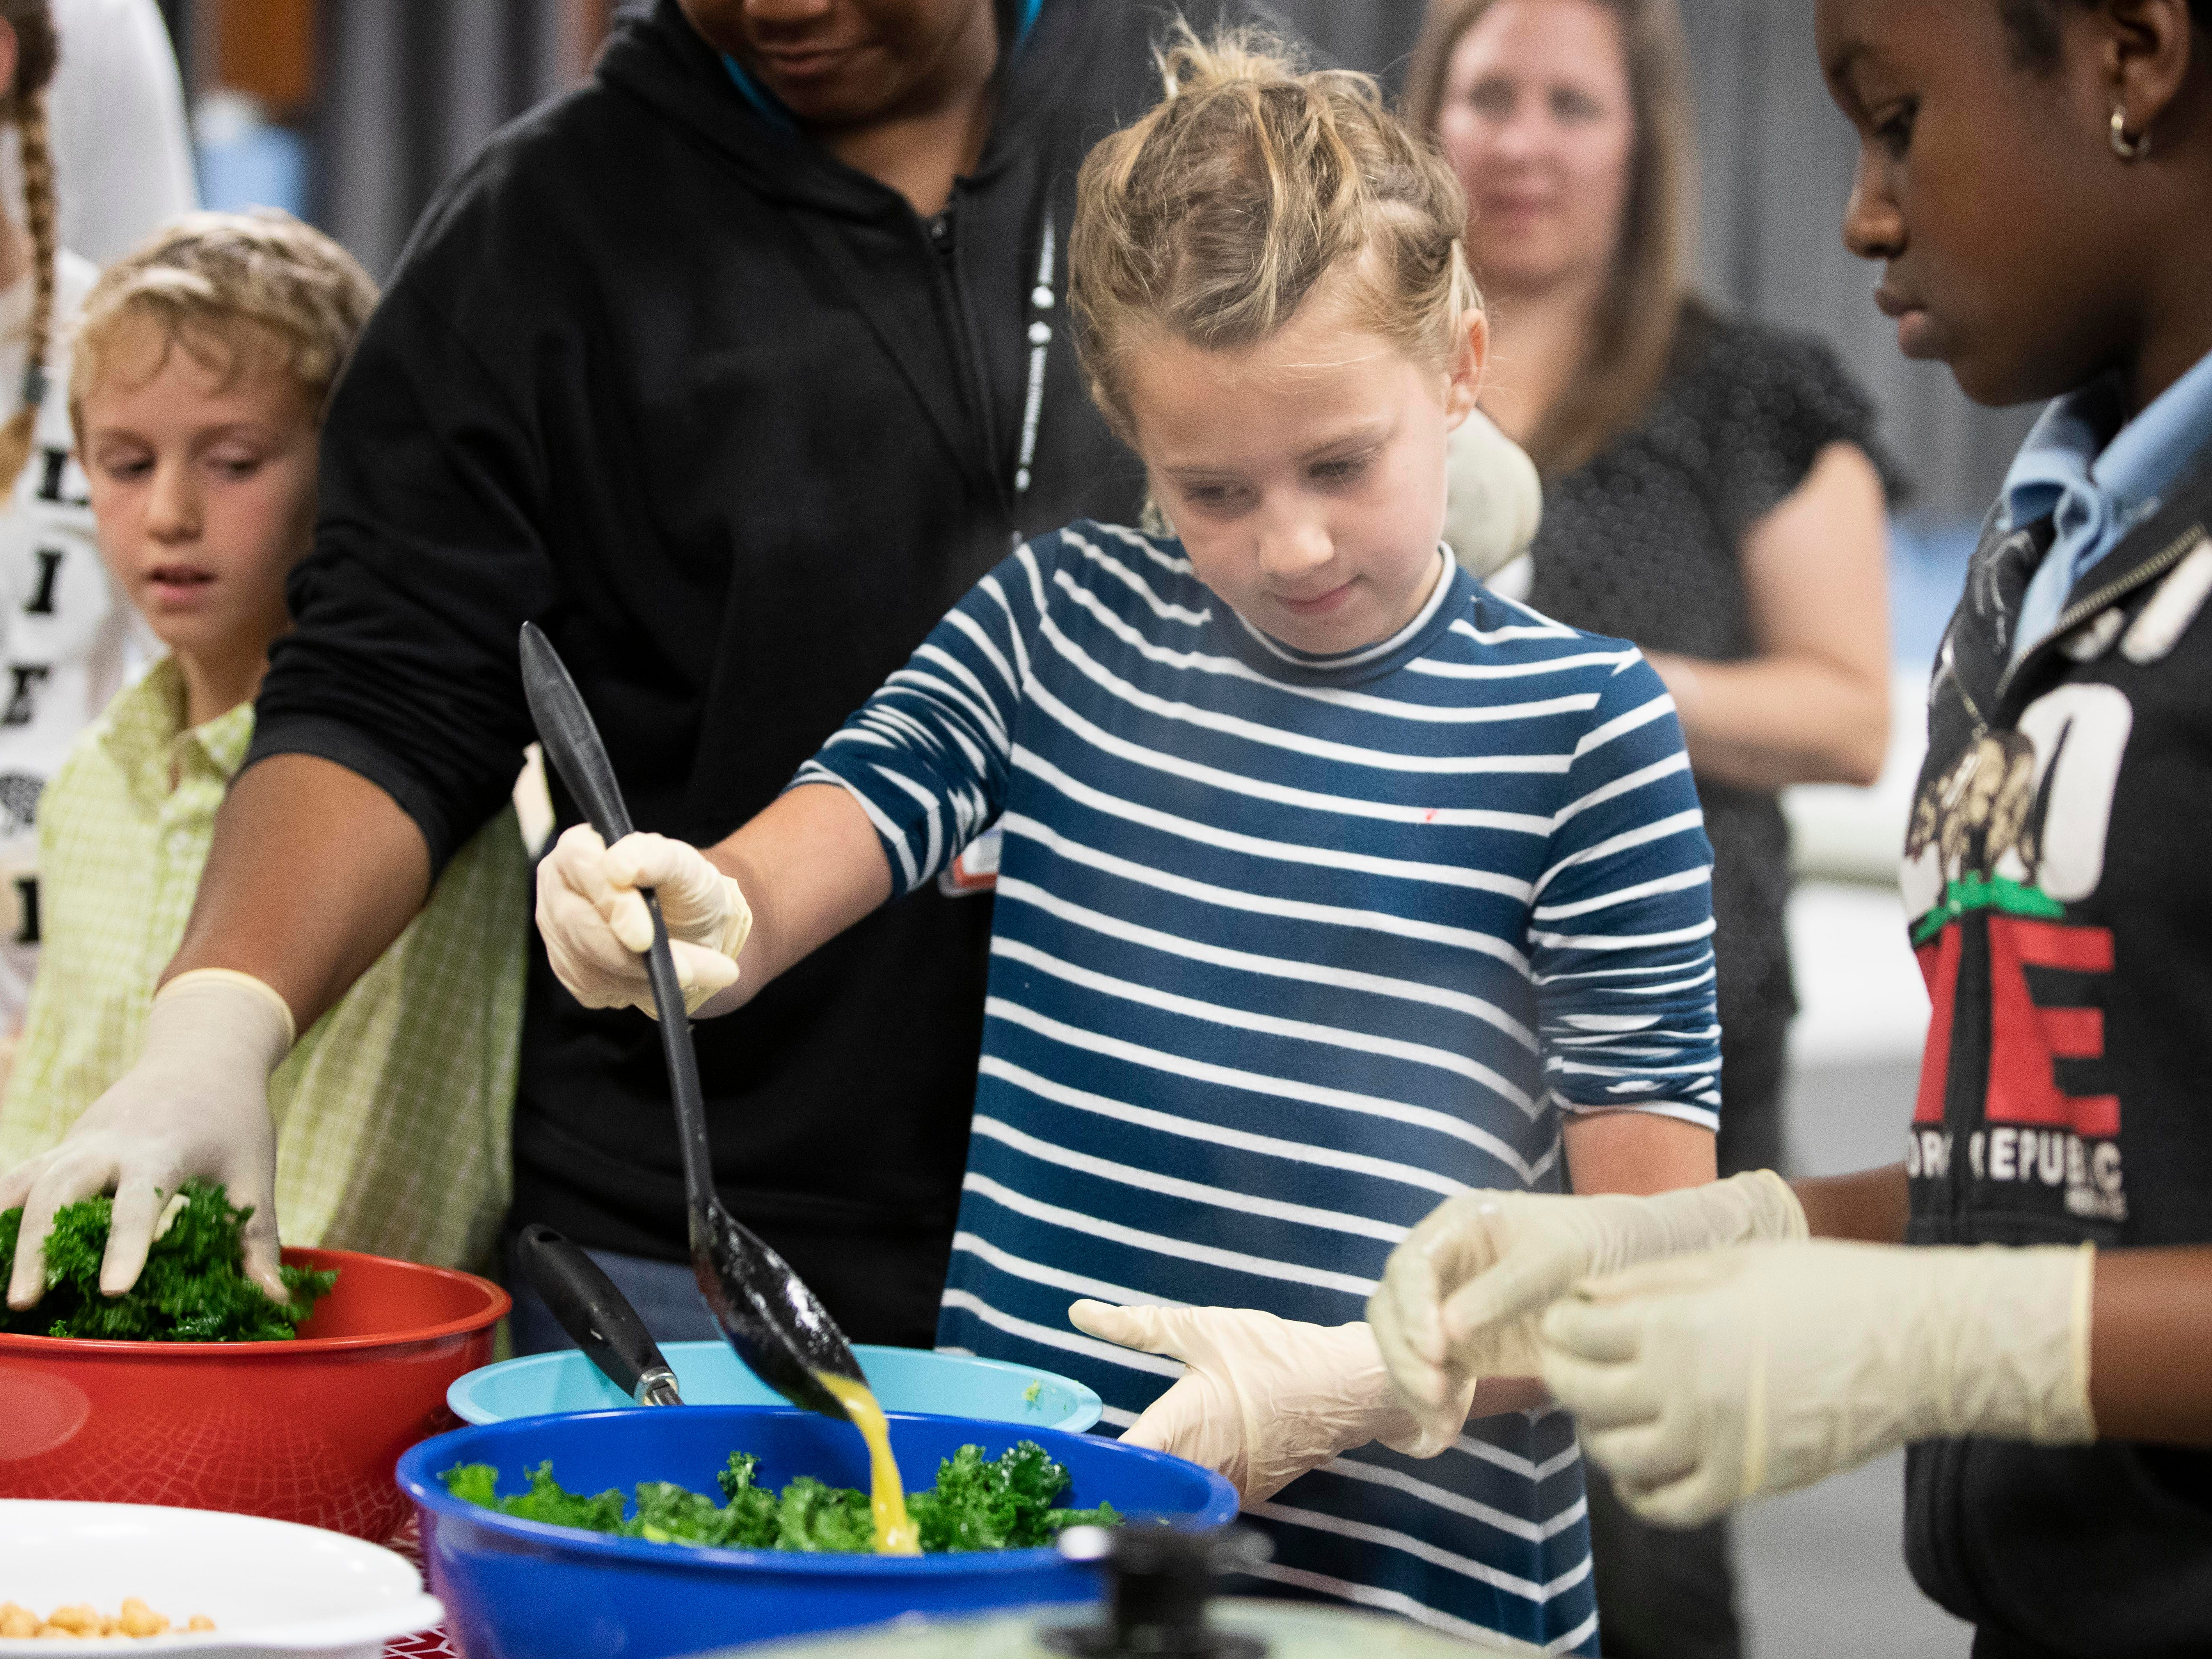 Marybeth Peña, a nurse program specialist with the Florida Department of Health-Martin County, taught a free, hands-on cooking class on Monday, Feb. 4, 2019, at the 10th Street Community Center in Stuart. Adults and children learned knife skills, kitchen safety, and how to prepare healthy, low-cost meals. At the end of the class participants ate the veggie brown rice bowls, fruit and sparkling water that they helped prepare. The program was open to all members of the public. The center has plans to continue the class.